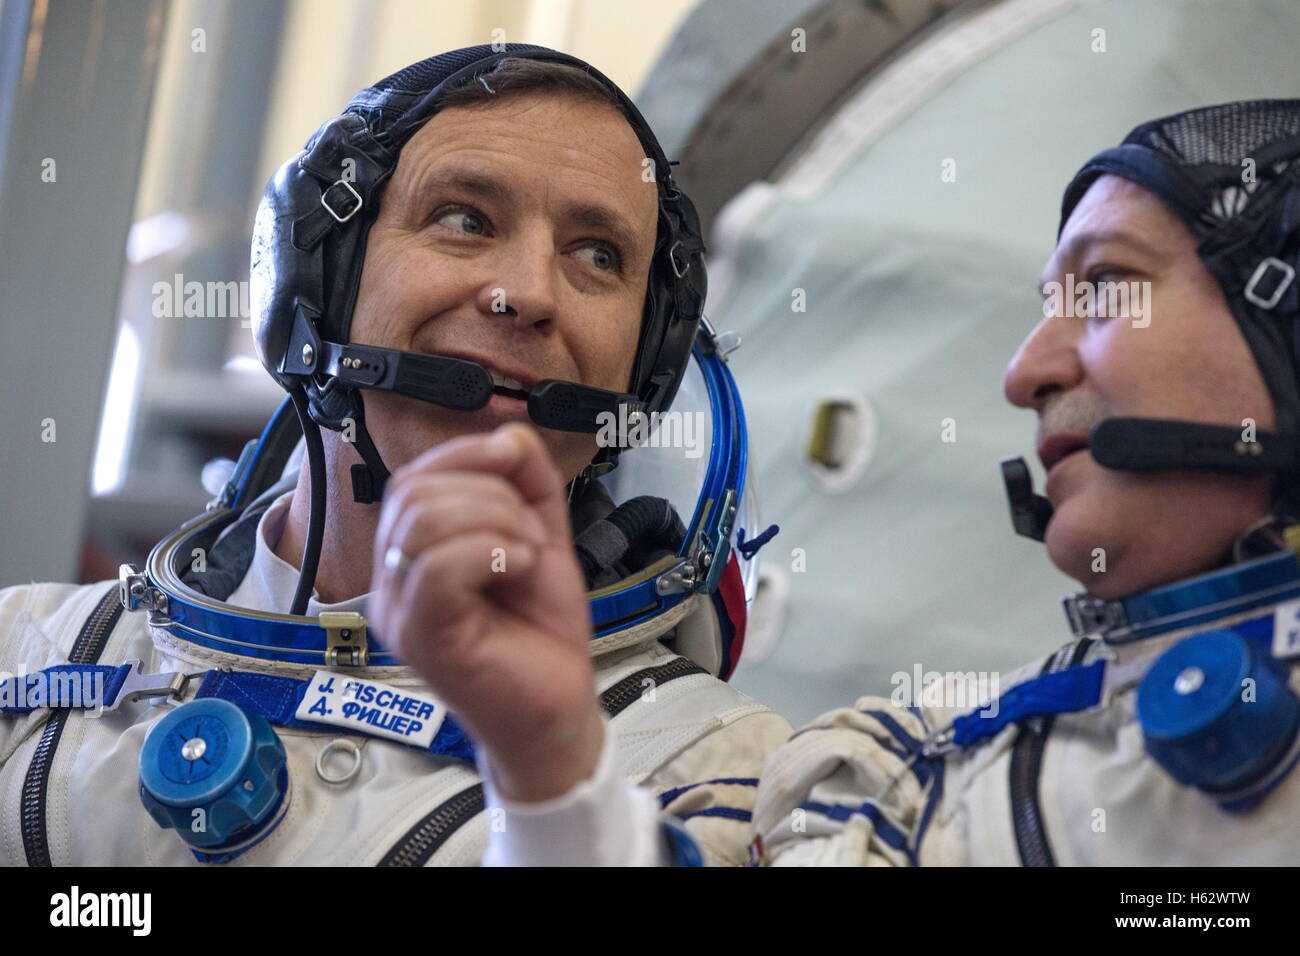 Moscow Region, Russia. 24th Oct, 2016. ISS Expedition 49/50 backup crew members, astronaut Jack D. Fischer (NASA) - Stock Image